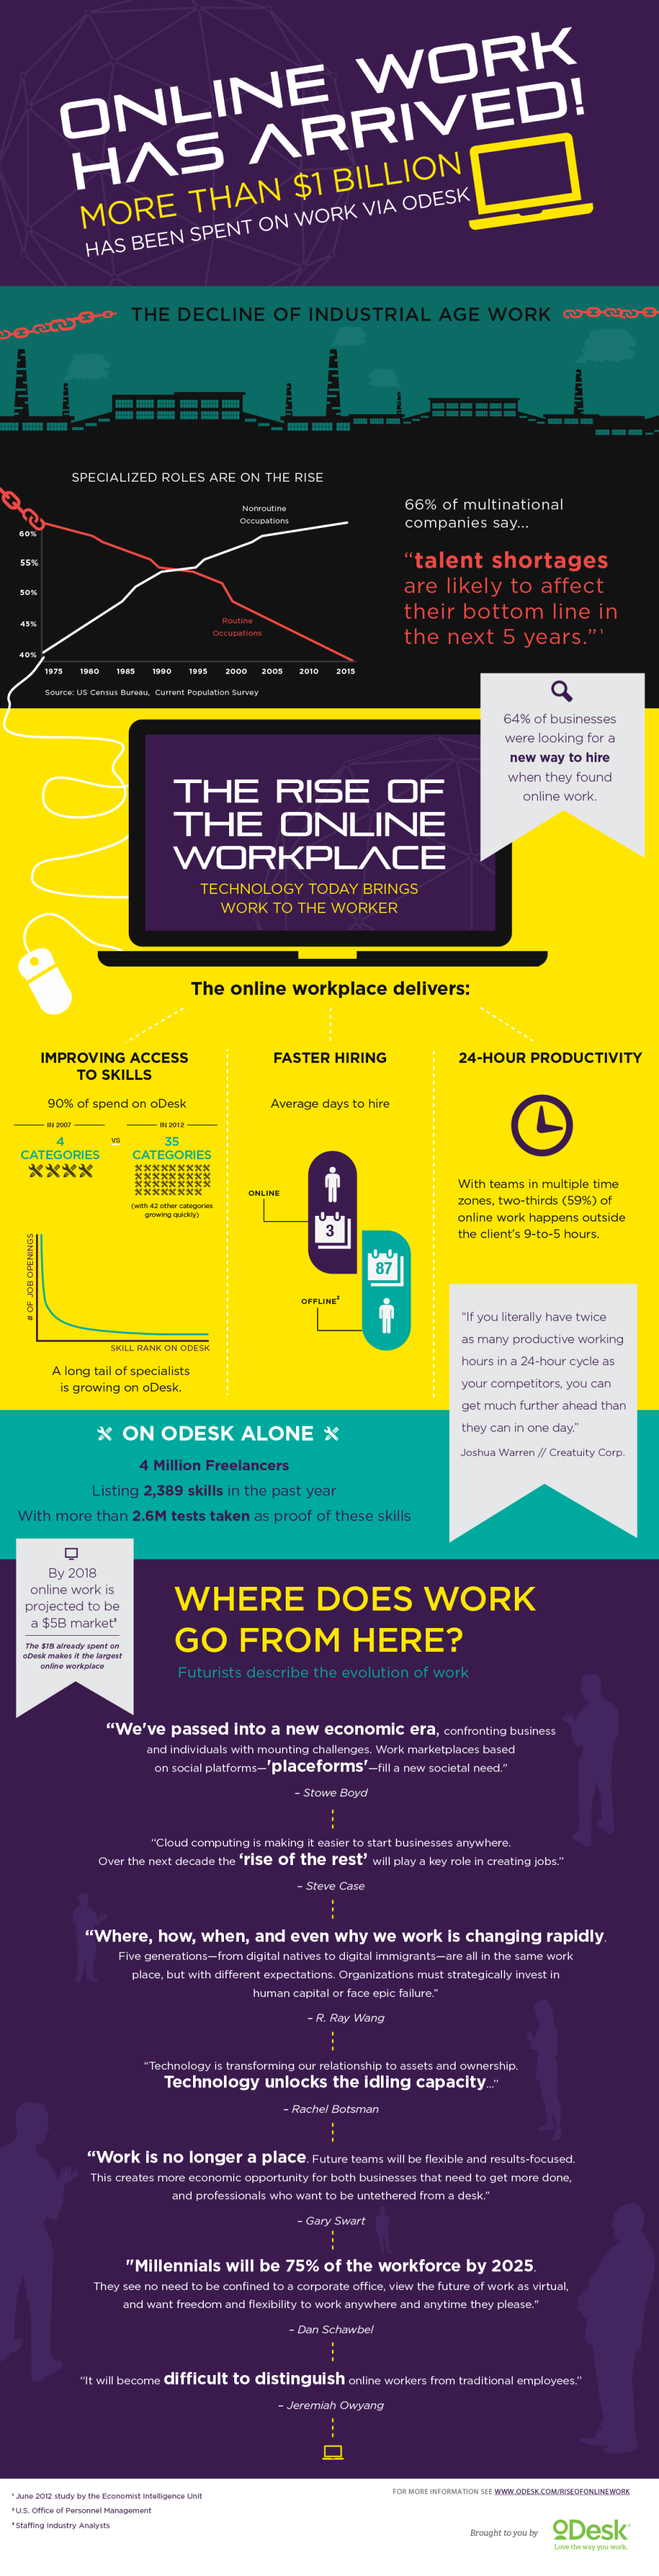 oDesk infographic